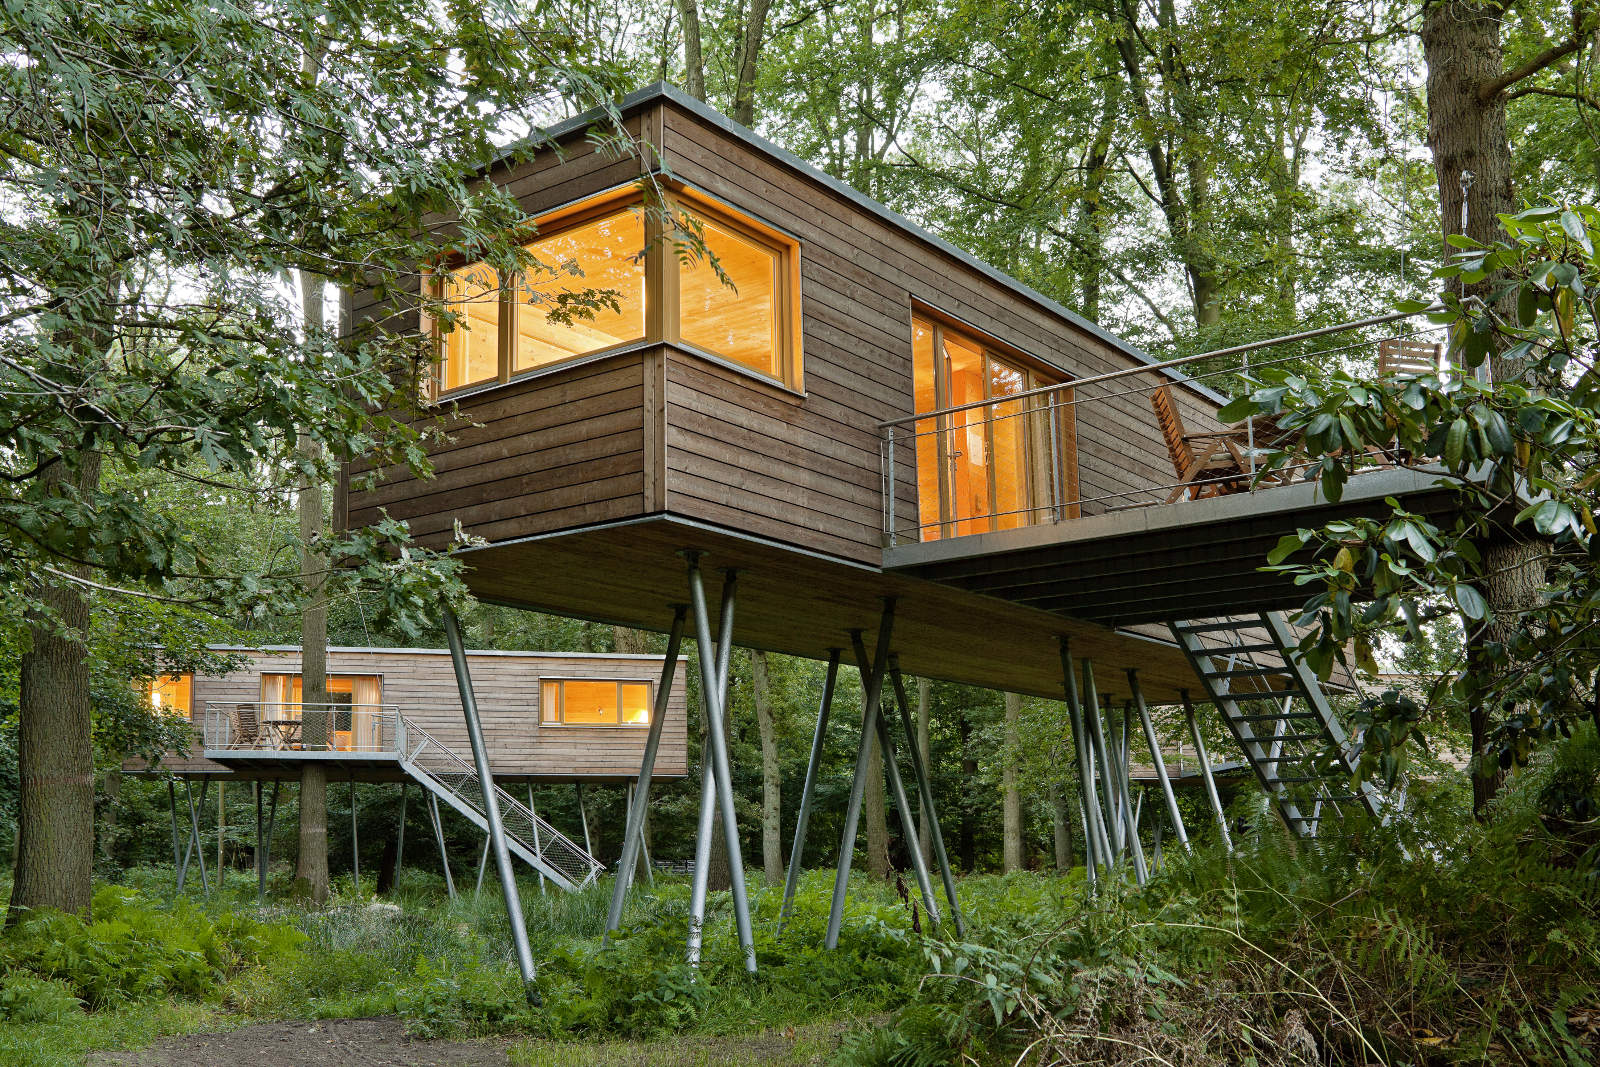 Gracefully built wooden treehouses in a forest